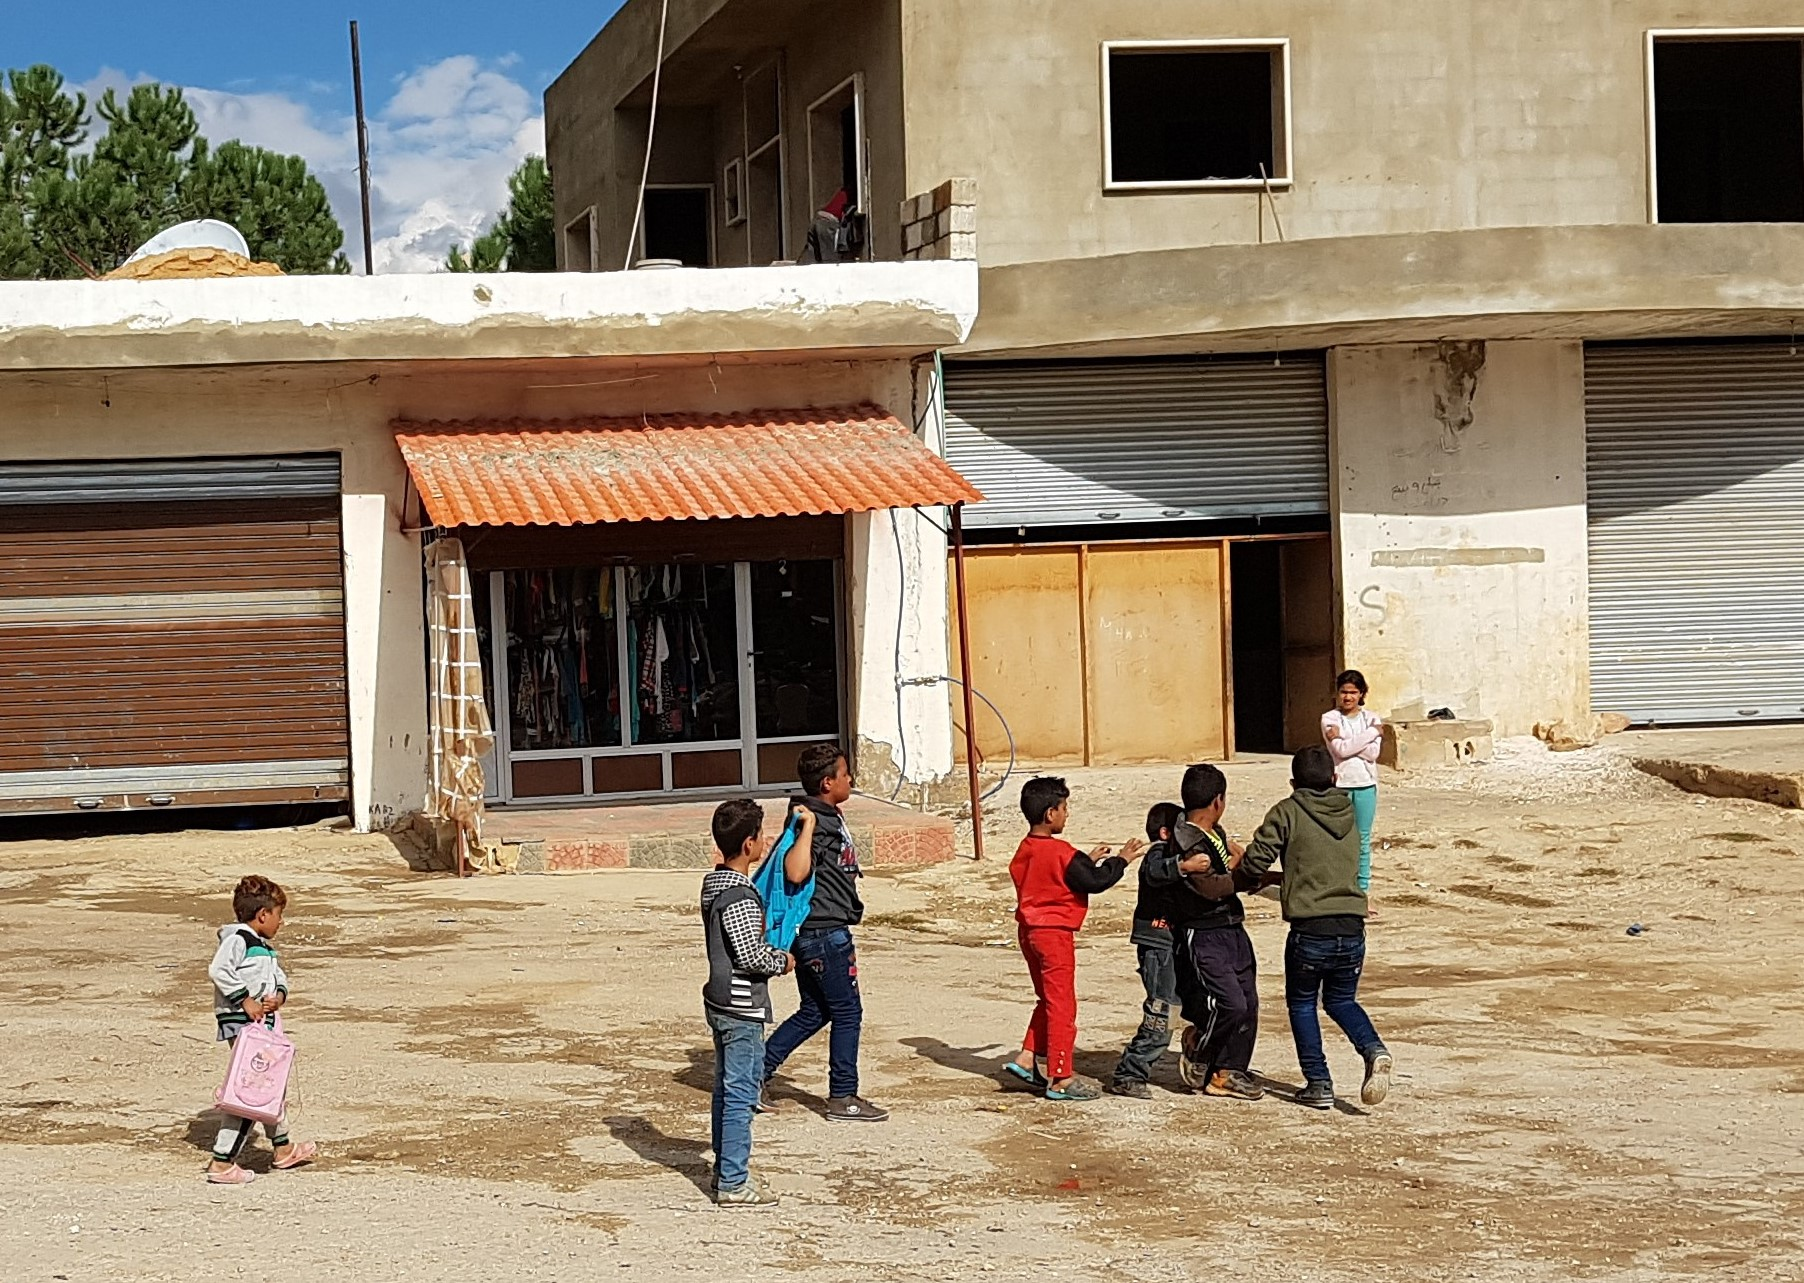 Syrian refugee children playing on the streets